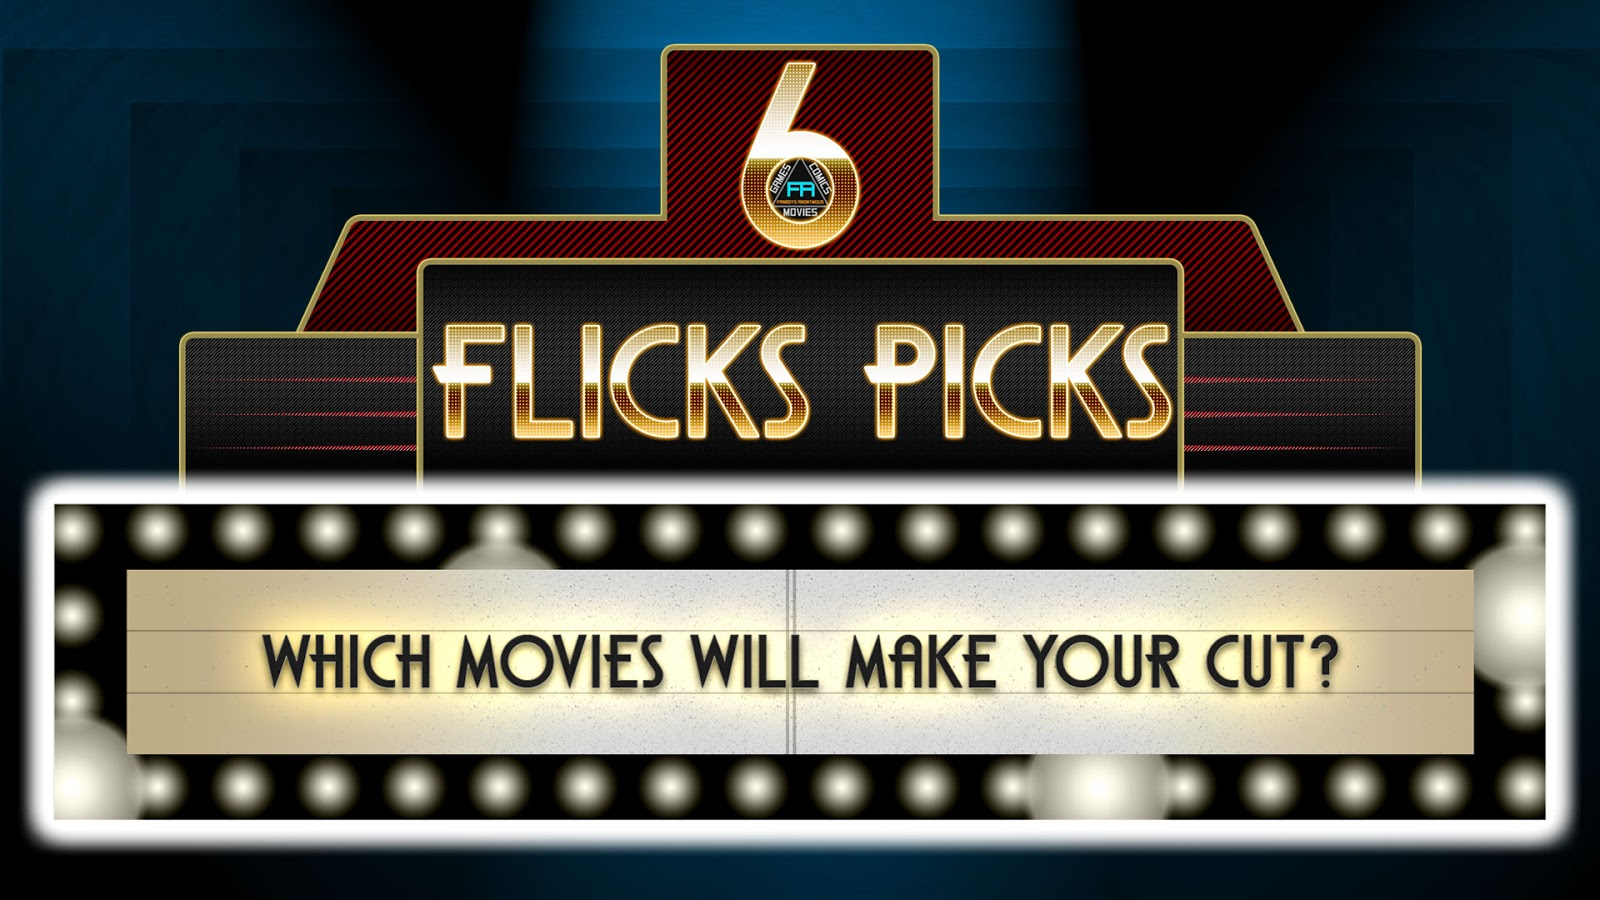 What movies are coming out July 2016 6 Flicks Picks